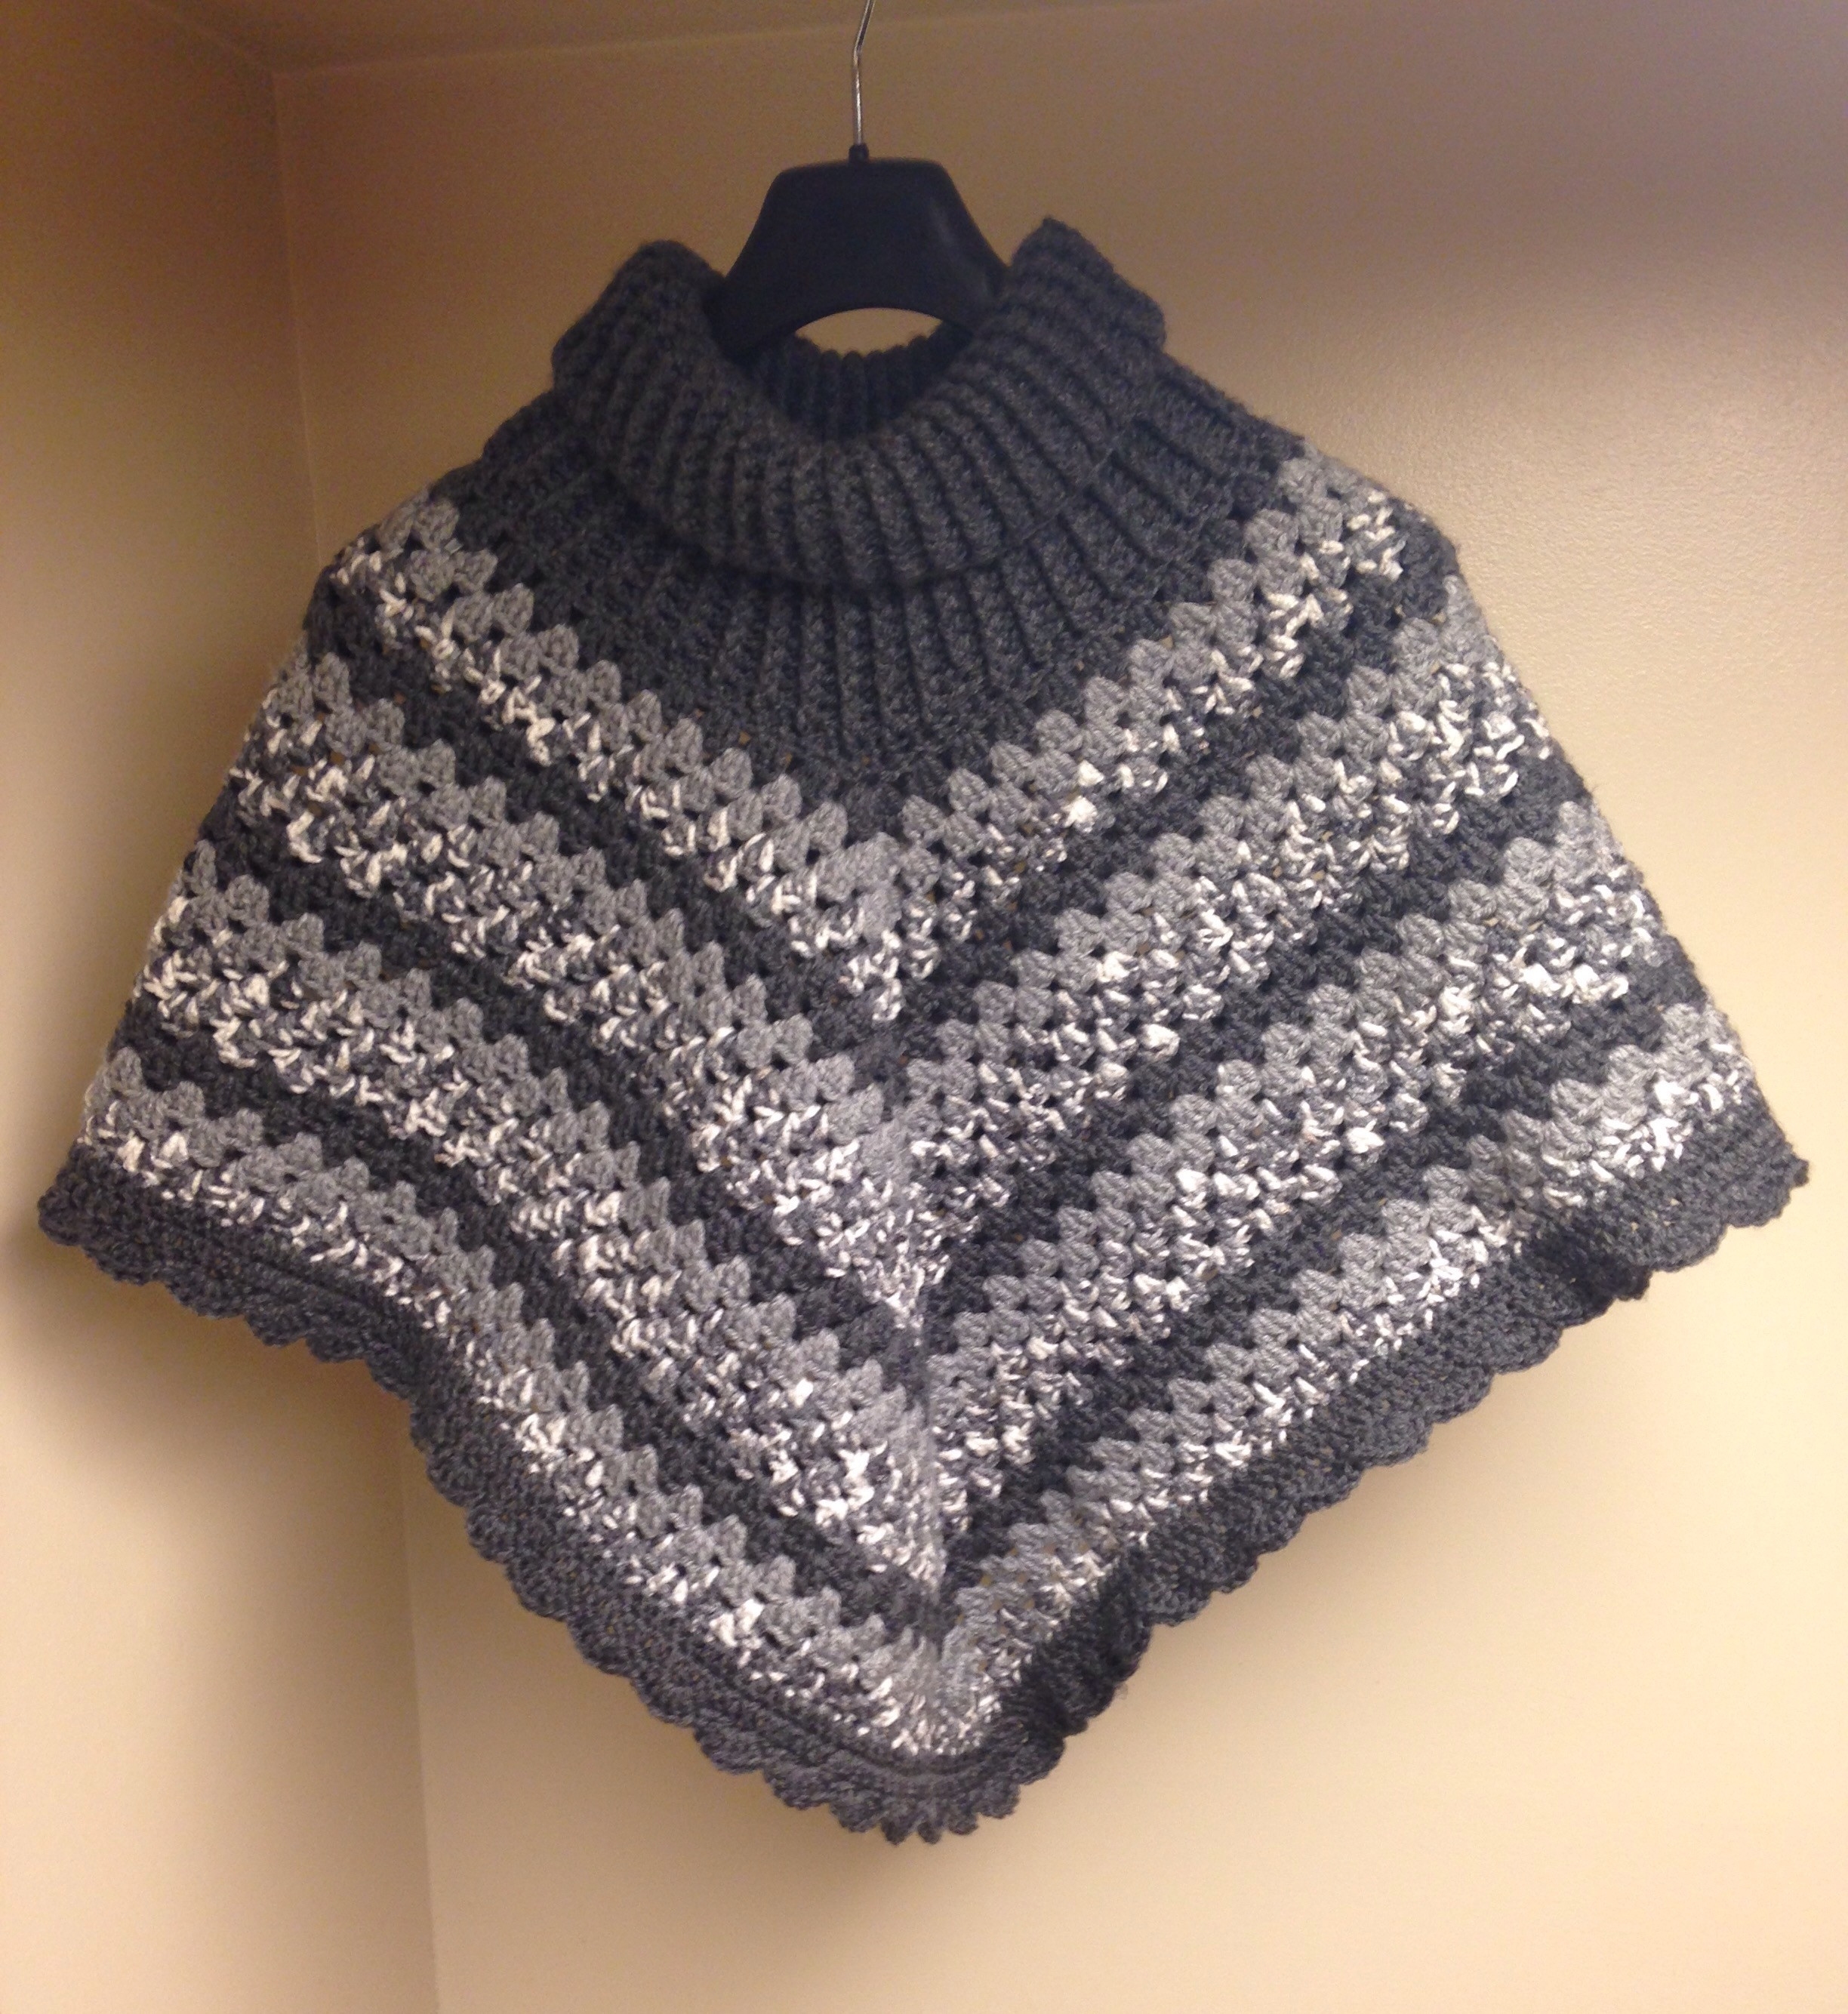 Lovely Cowl Neck Poncho – Hey Can You Crochet Me A… Crochet Cowl Neck Poncho Of Beautiful 44 Pics Crochet Cowl Neck Poncho